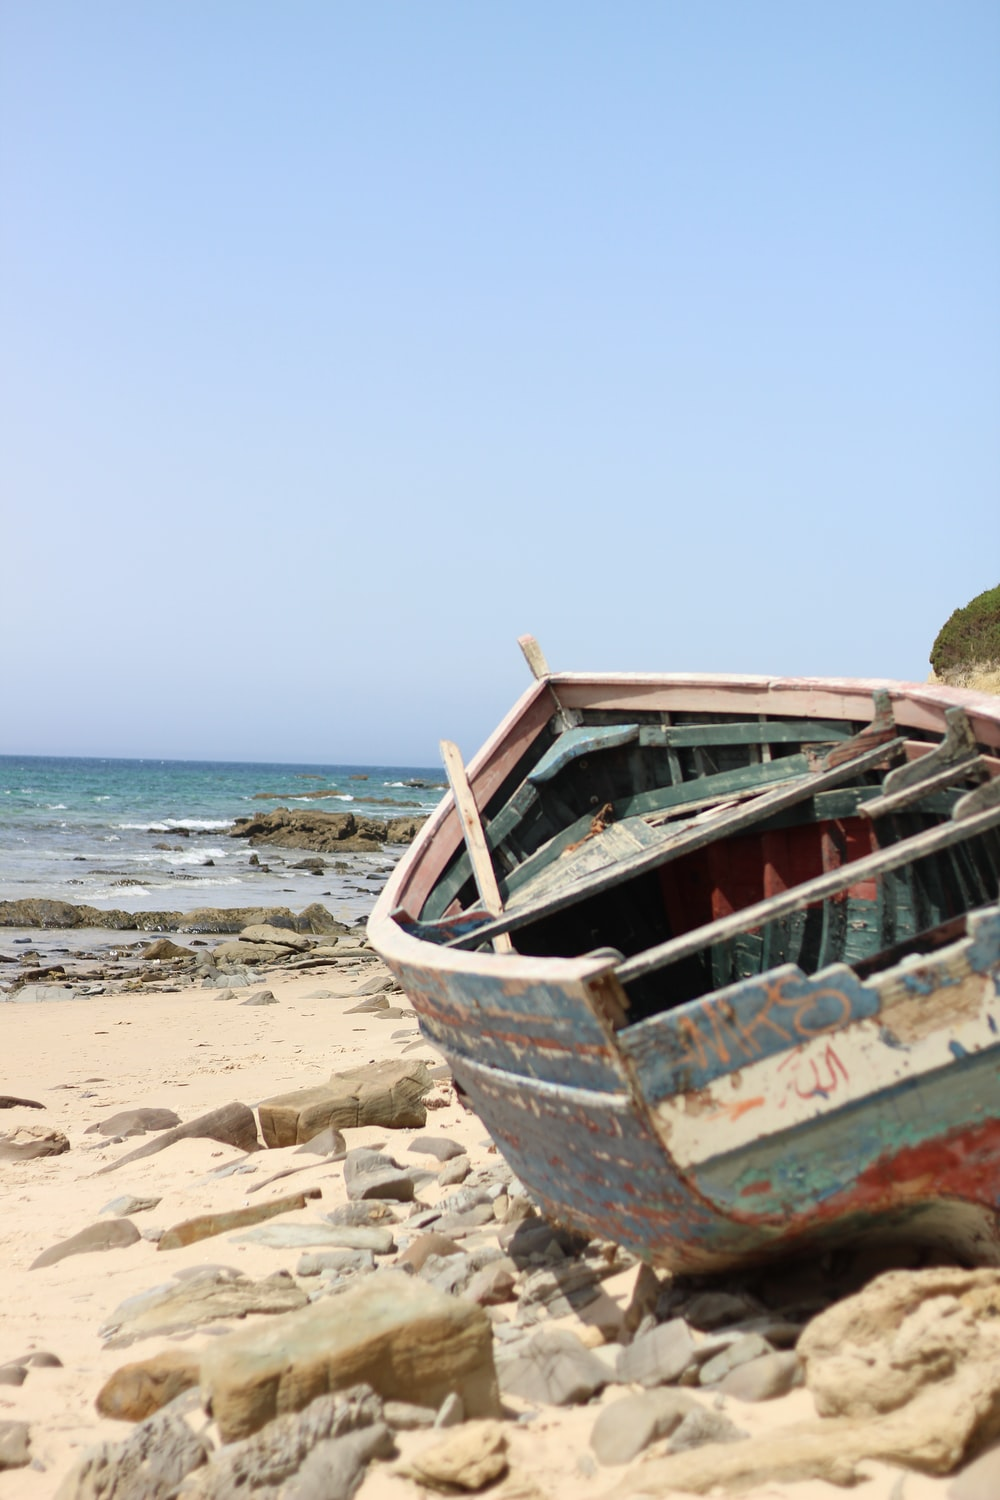 brown and white boat on beach during daytime